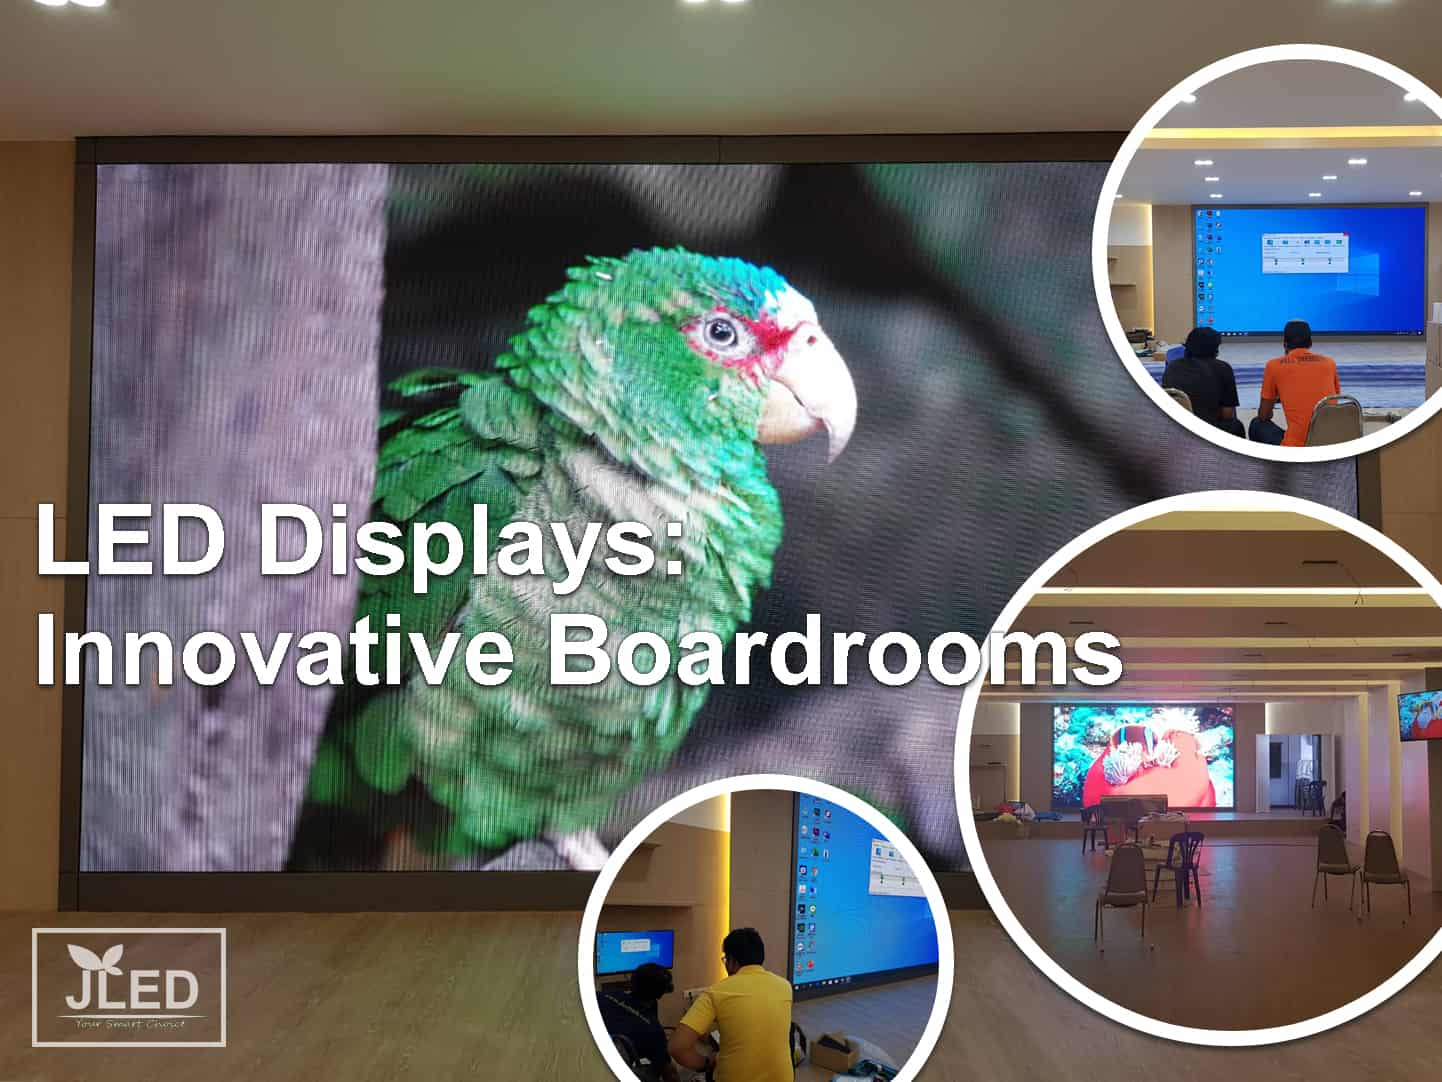 LED Displays: Innovative Boardrooms meeting room jled